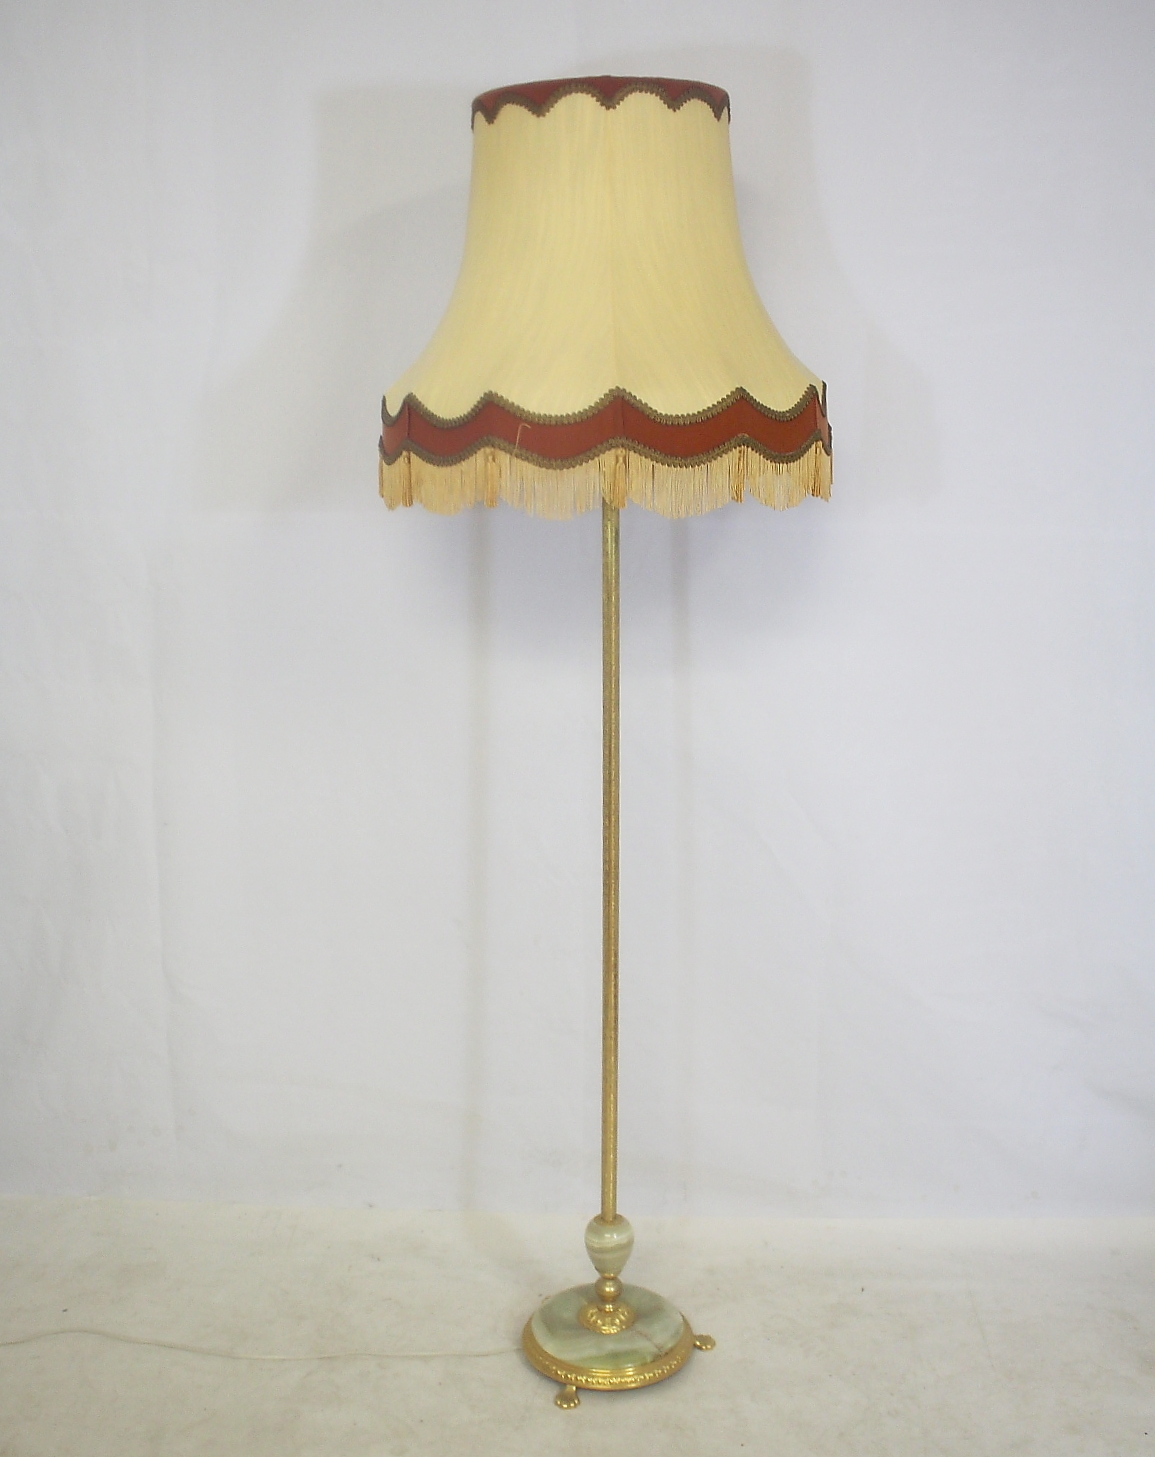 Marmortisch Gold Golvlampa Marmor Mässing Lighting Lamps Floor Lights Auctionet